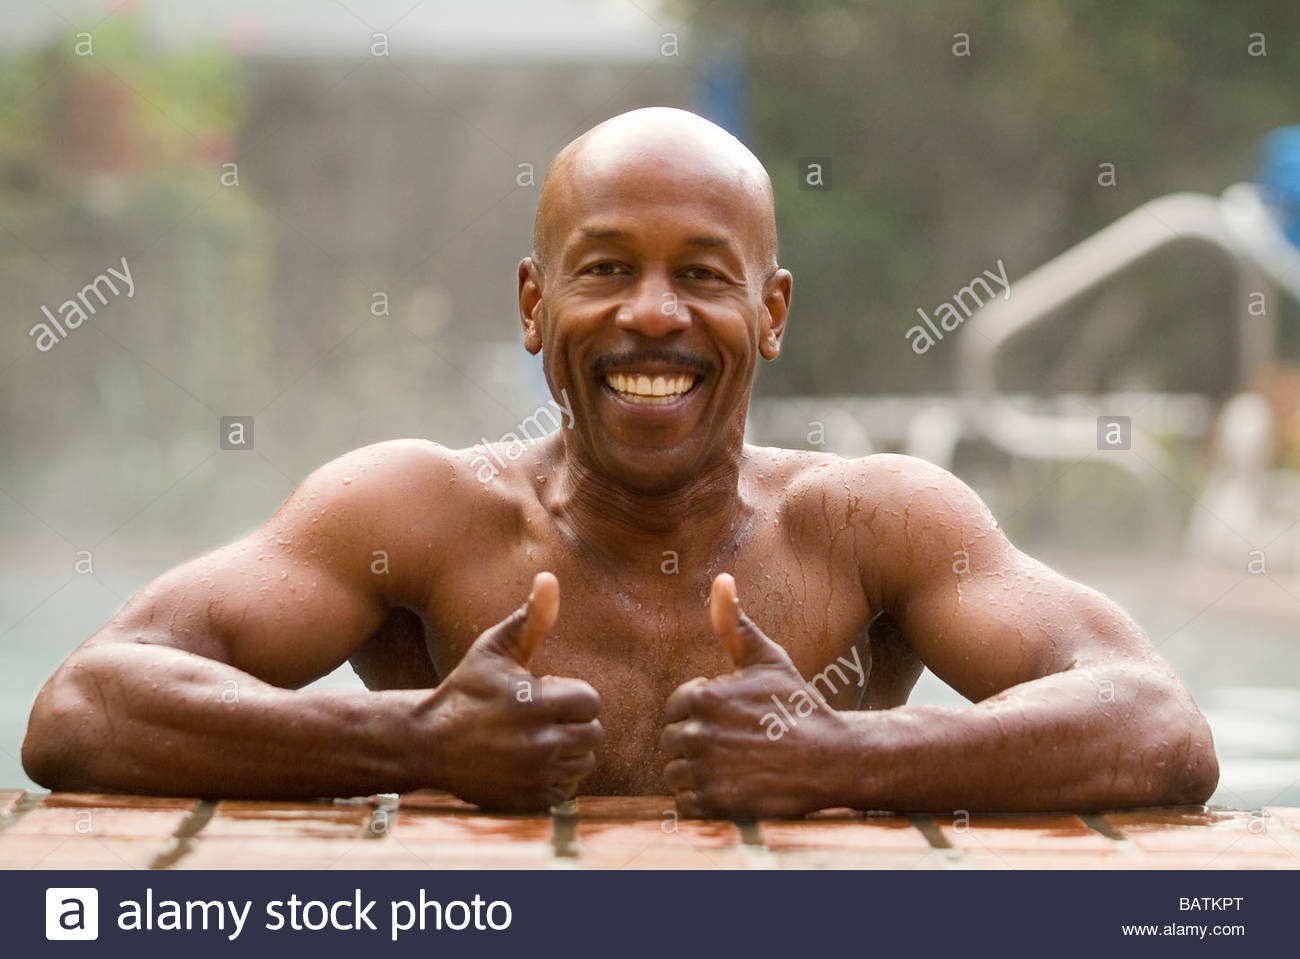 African Man In Pool Giving Thumbs Up Gesture